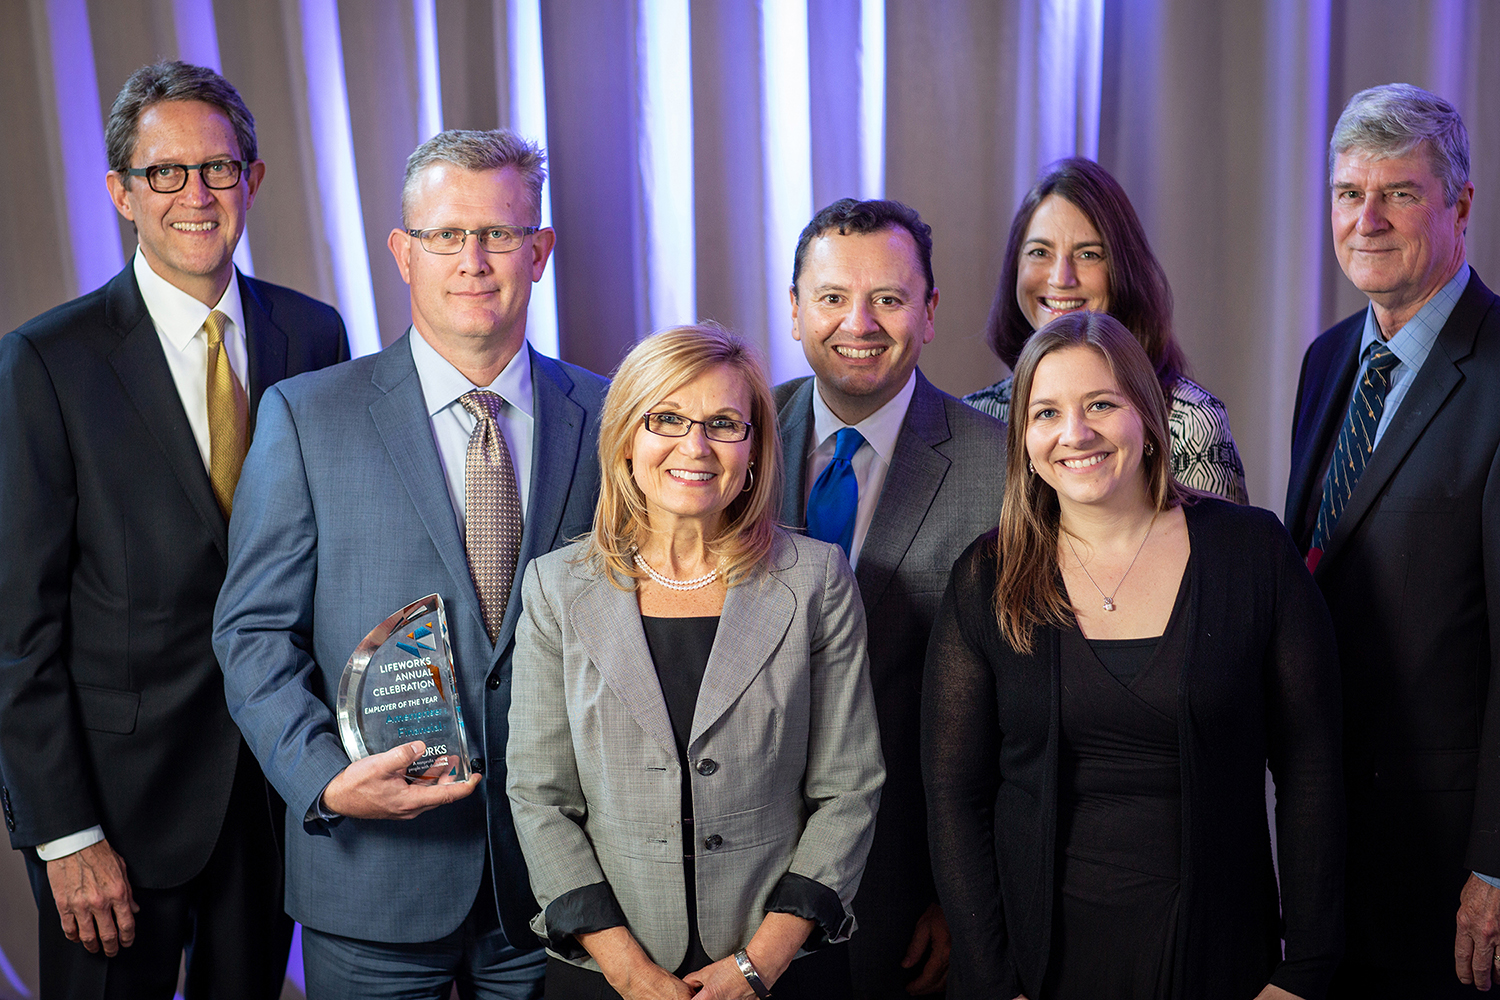 Lifeworks-Annual-Celebration-Ameriprise-Financial-Employer-of-the-Year-1